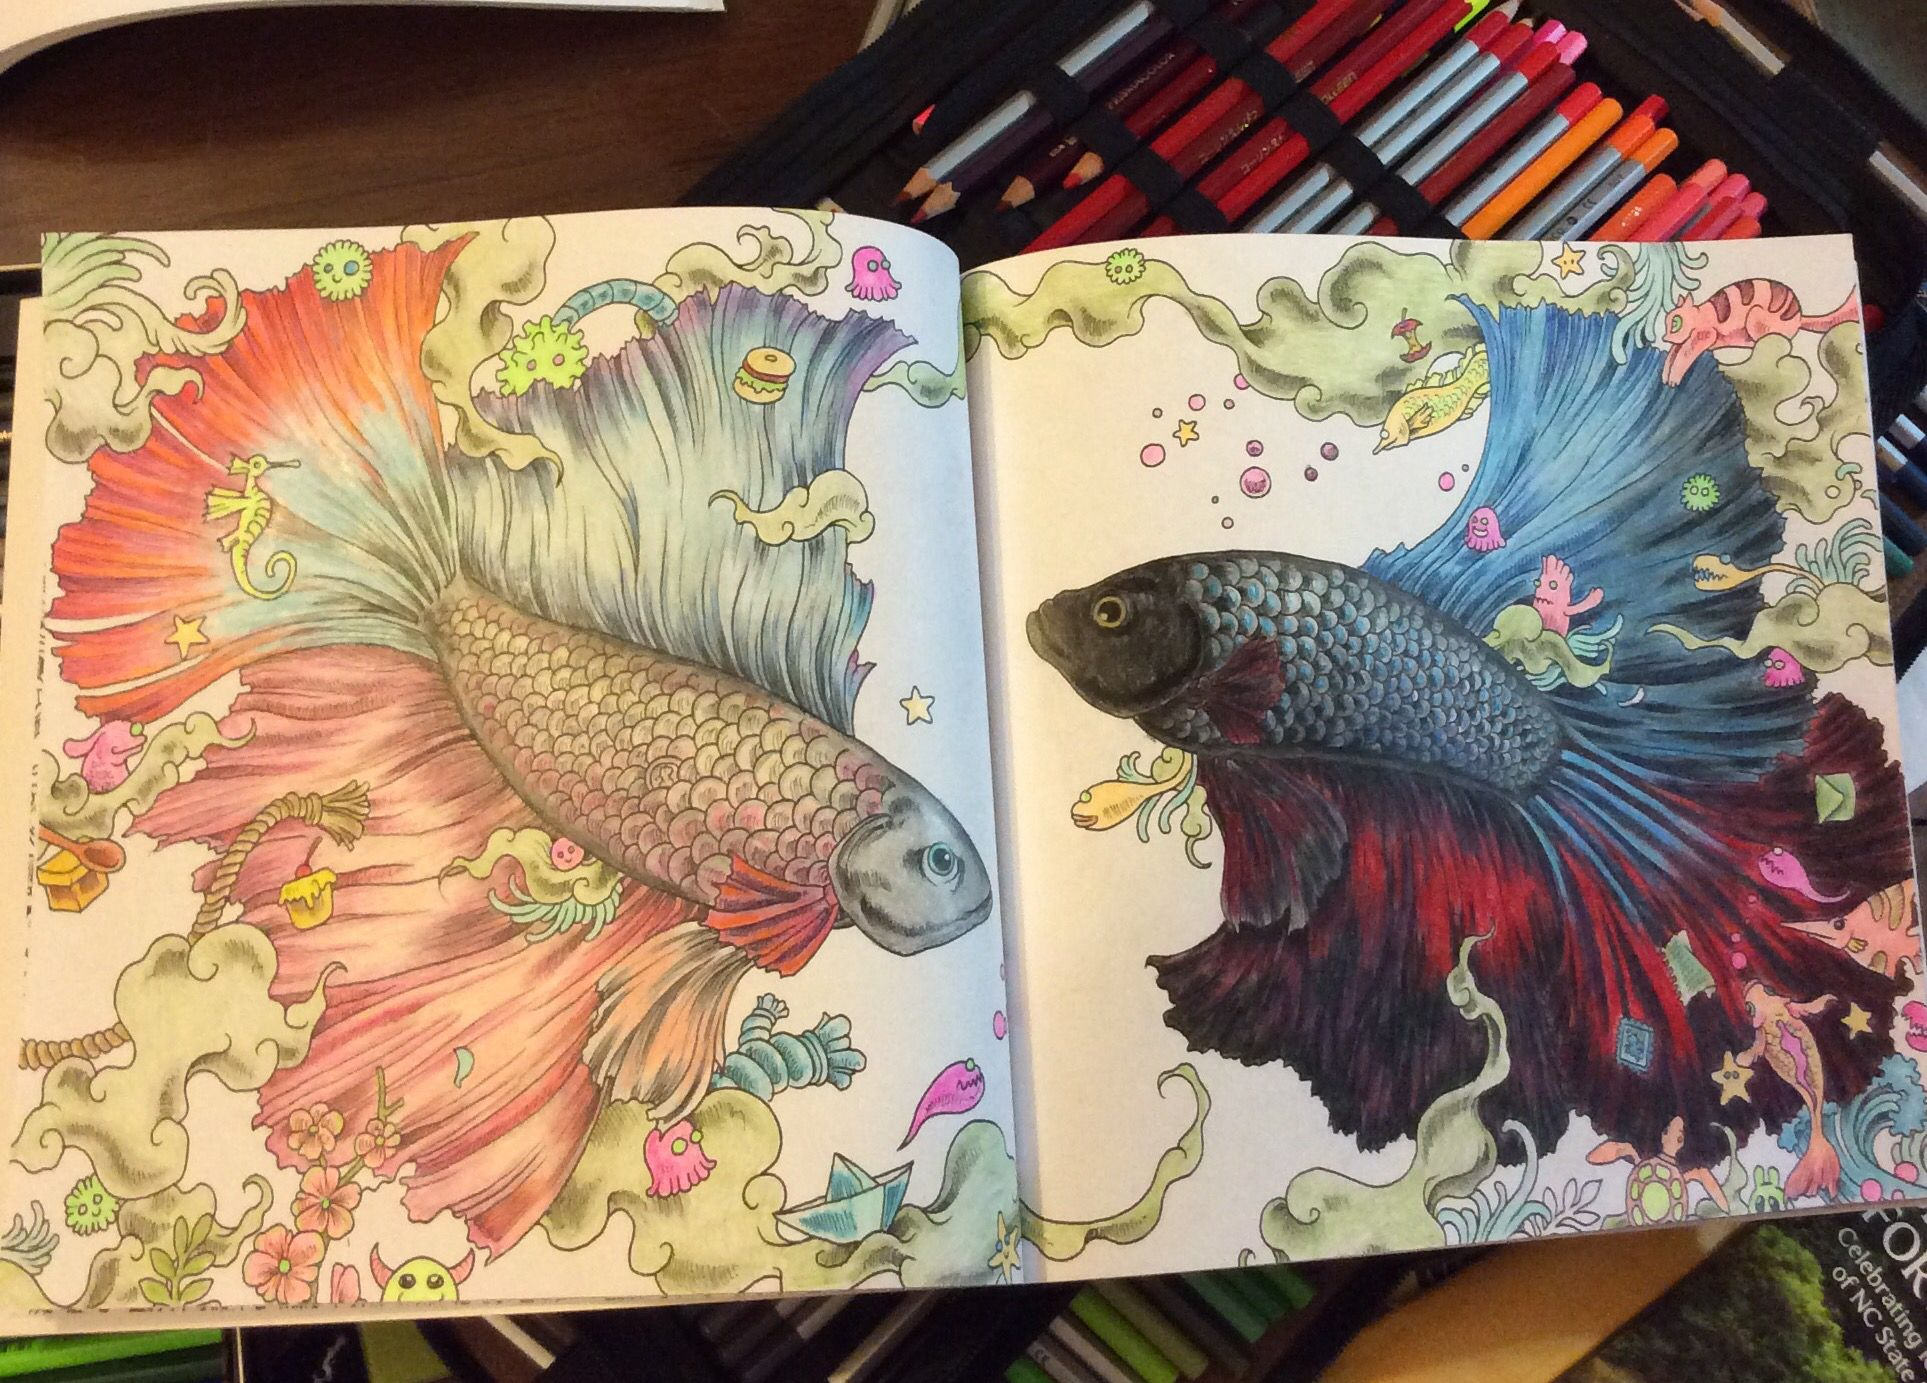 From Animorphia Coloring Book Mix Of Different Brands Colored Pencils Coloring Book Art Animorphia Coloring Book Color Pencil Art